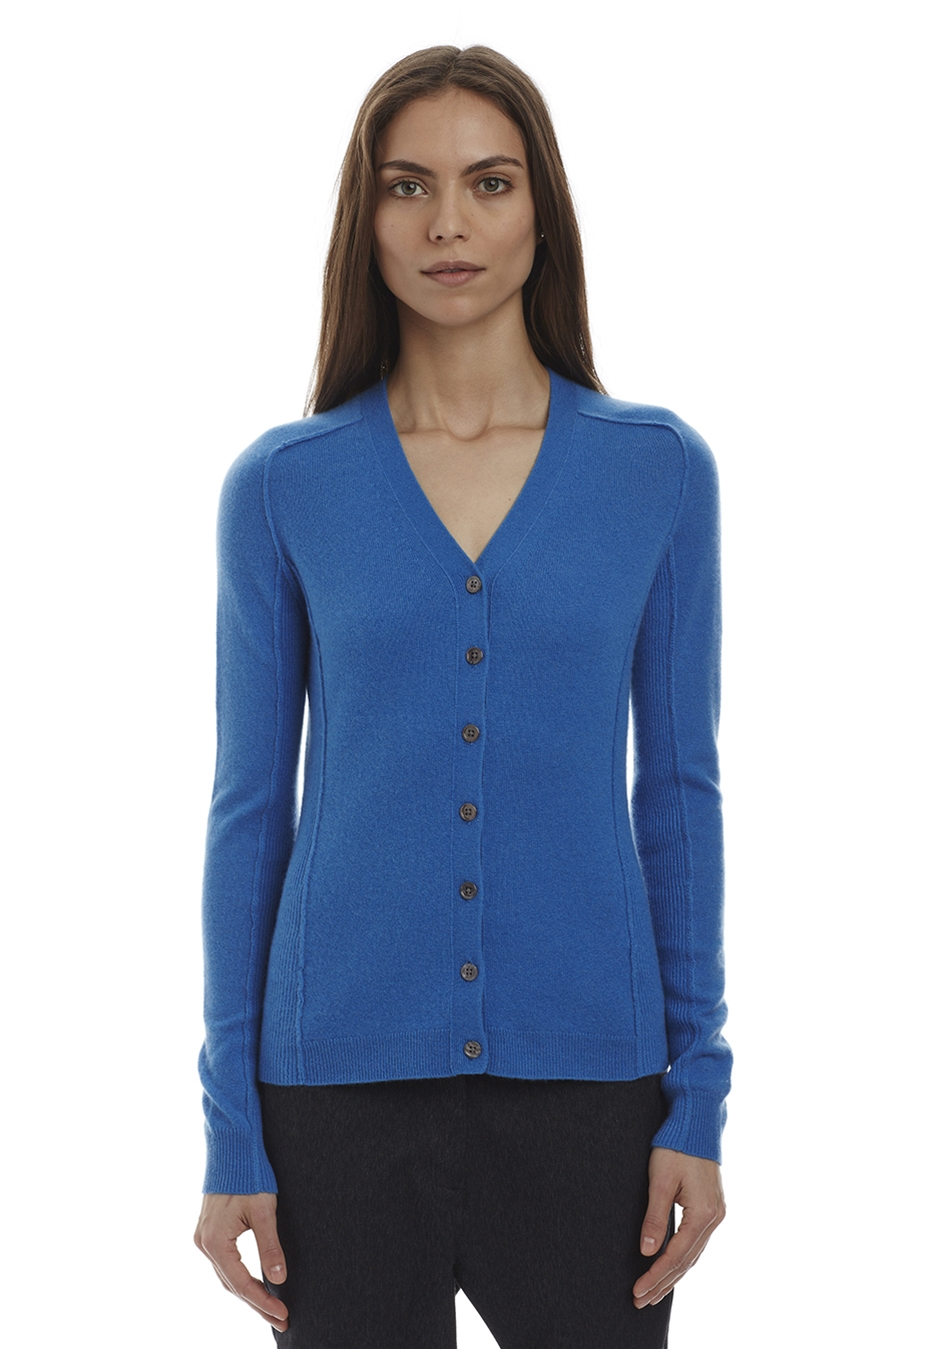 Cashmere Stretch V-Cardi . Was $428, now $128.40. More basic colors like black, grey and ivory are also included in the sale!